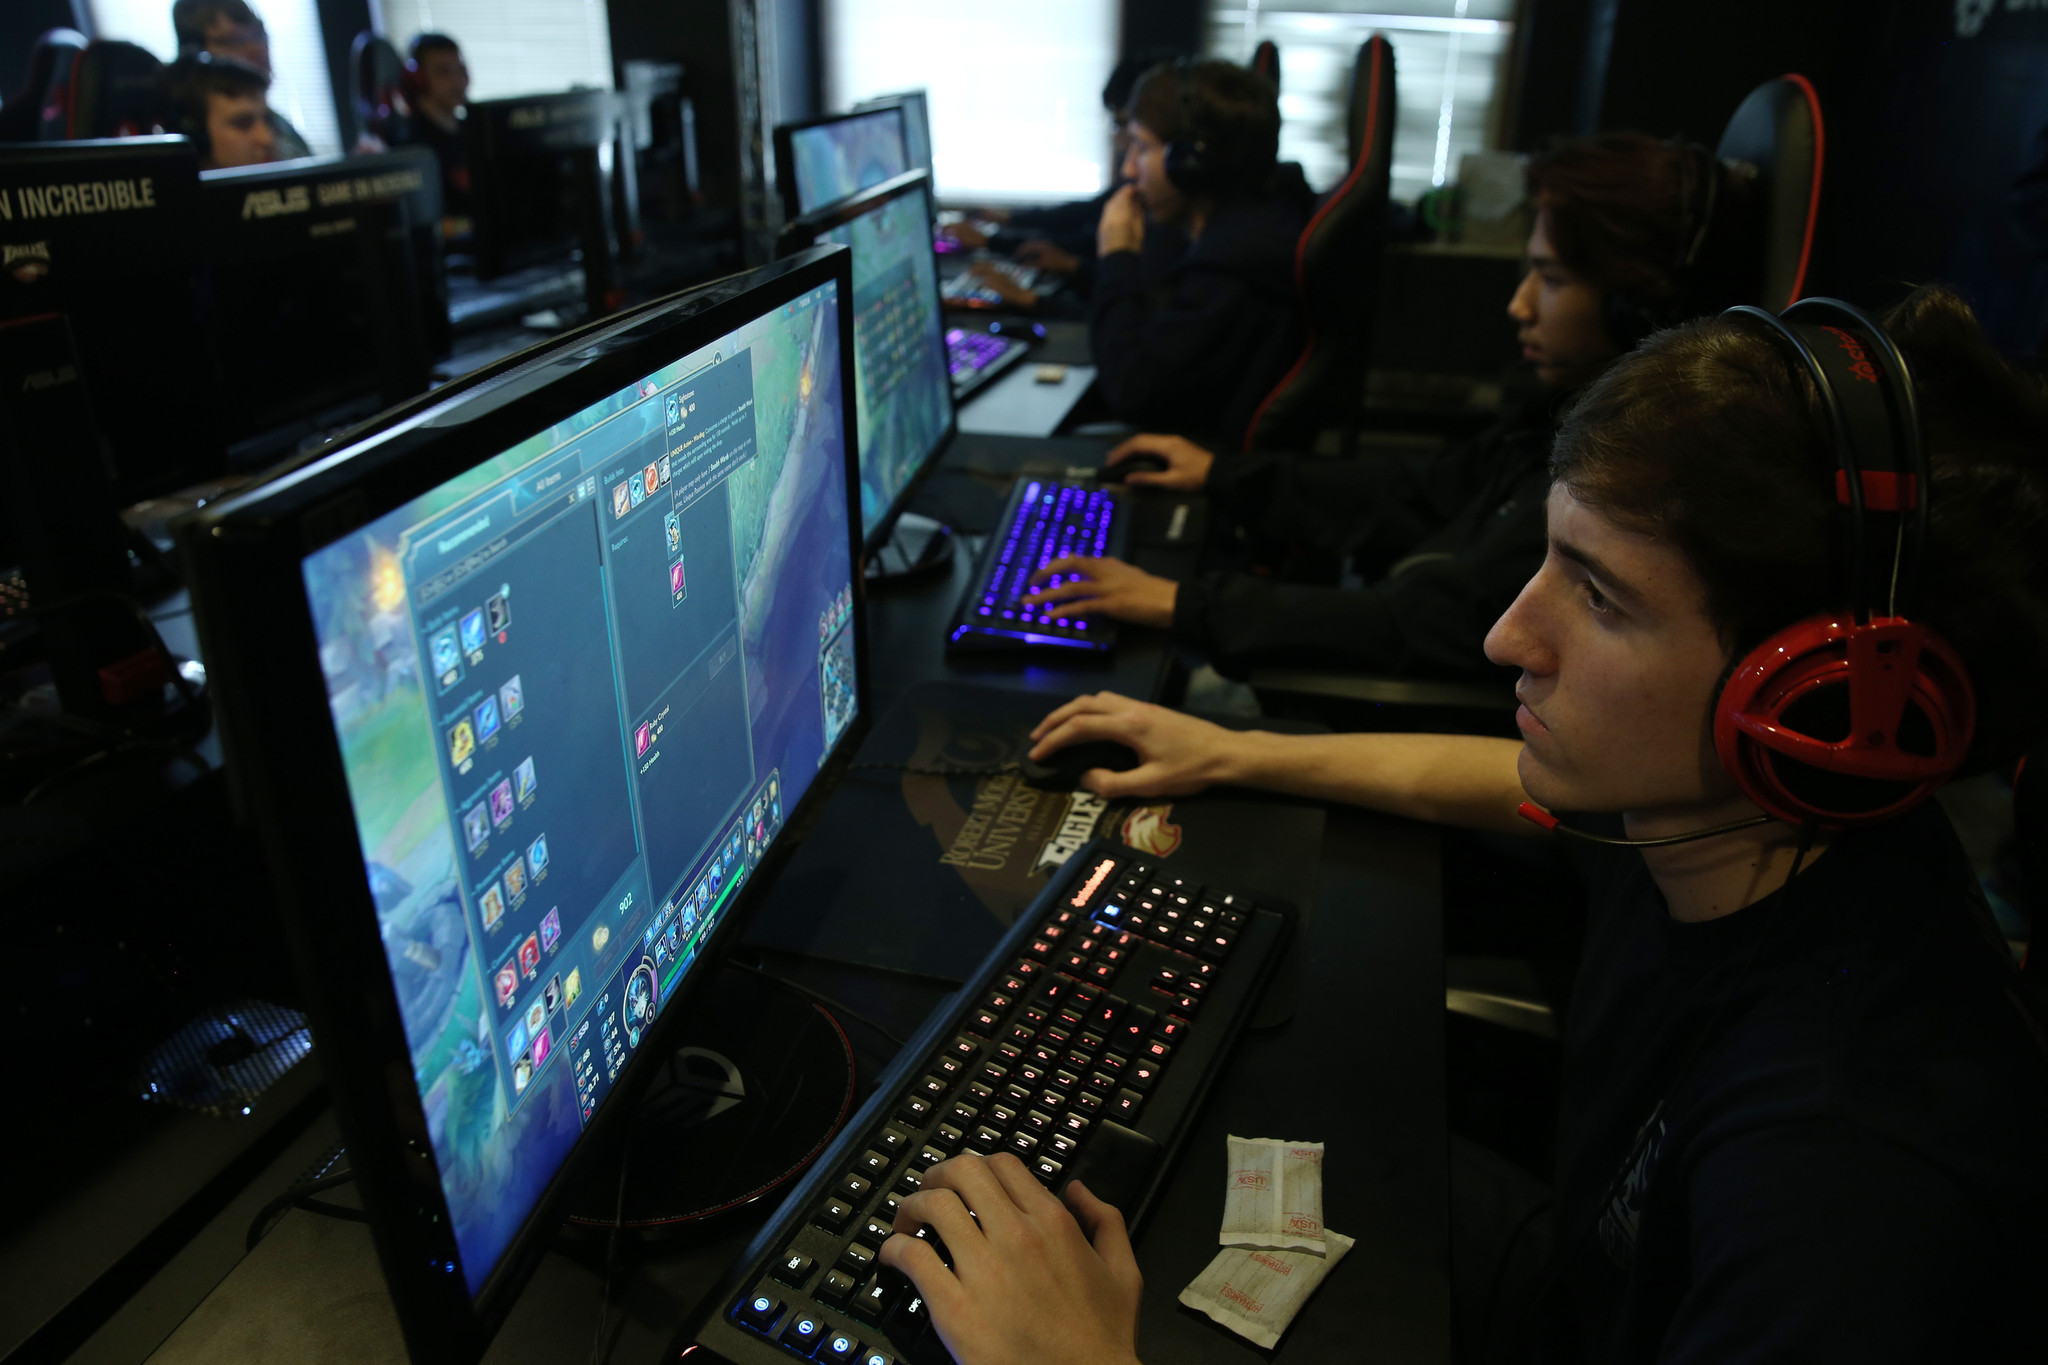 Video gaming becomes official after-school league at US high schools